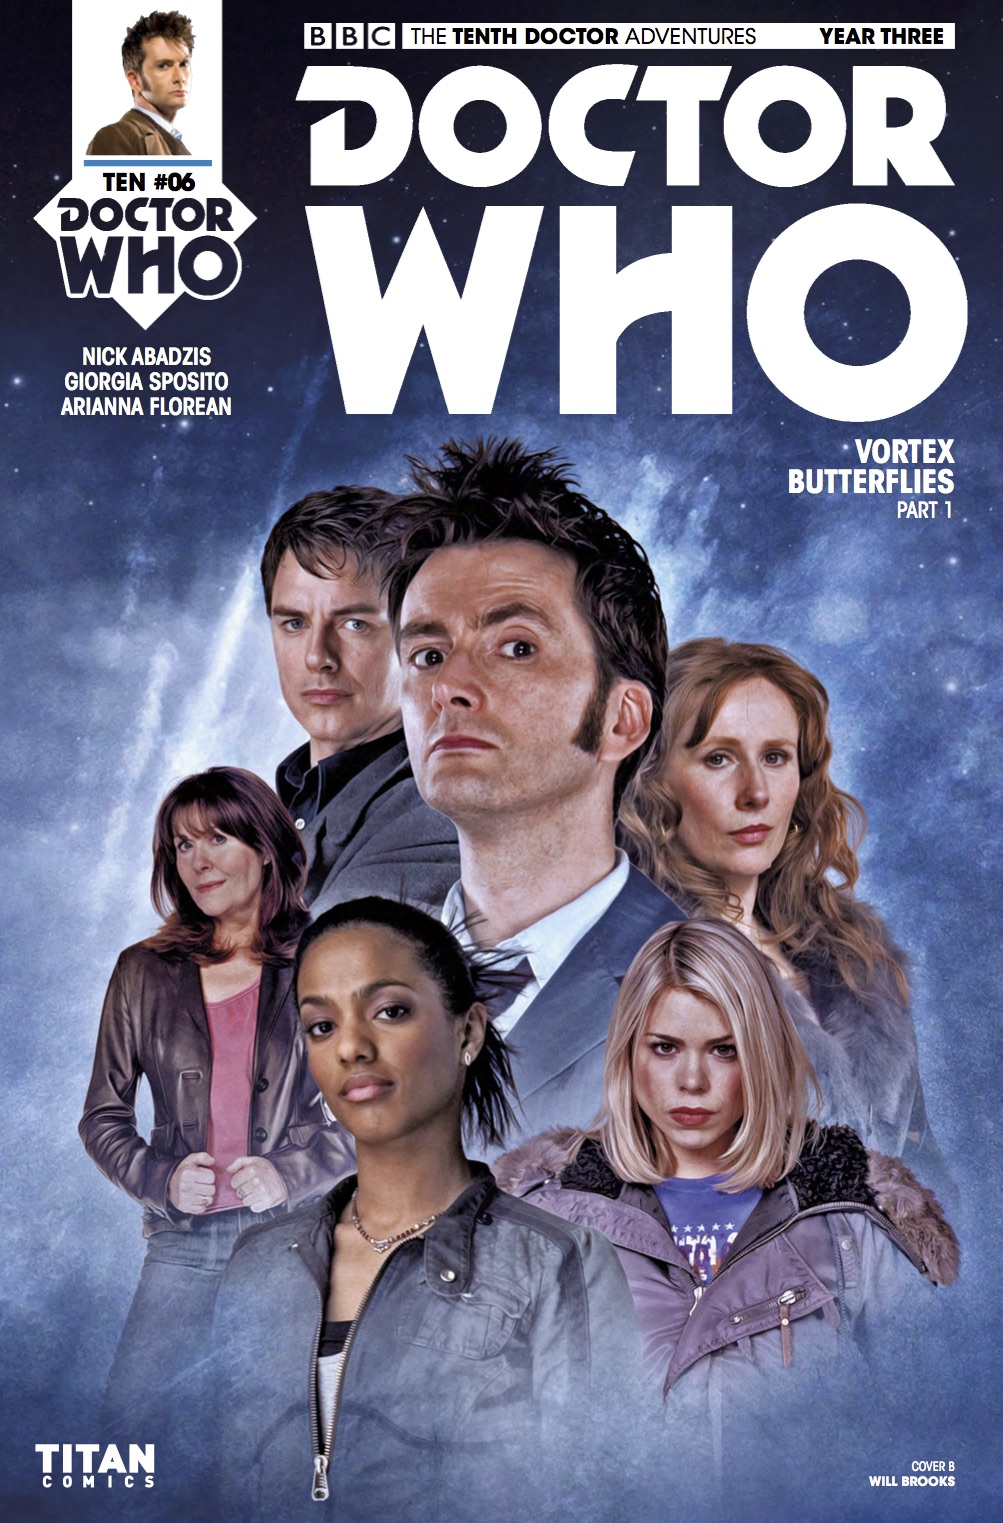 D​OCTOR WHO: THE TENTH DOCTOR YEAR 3 #6​ - Cover C: ​Will Brooks